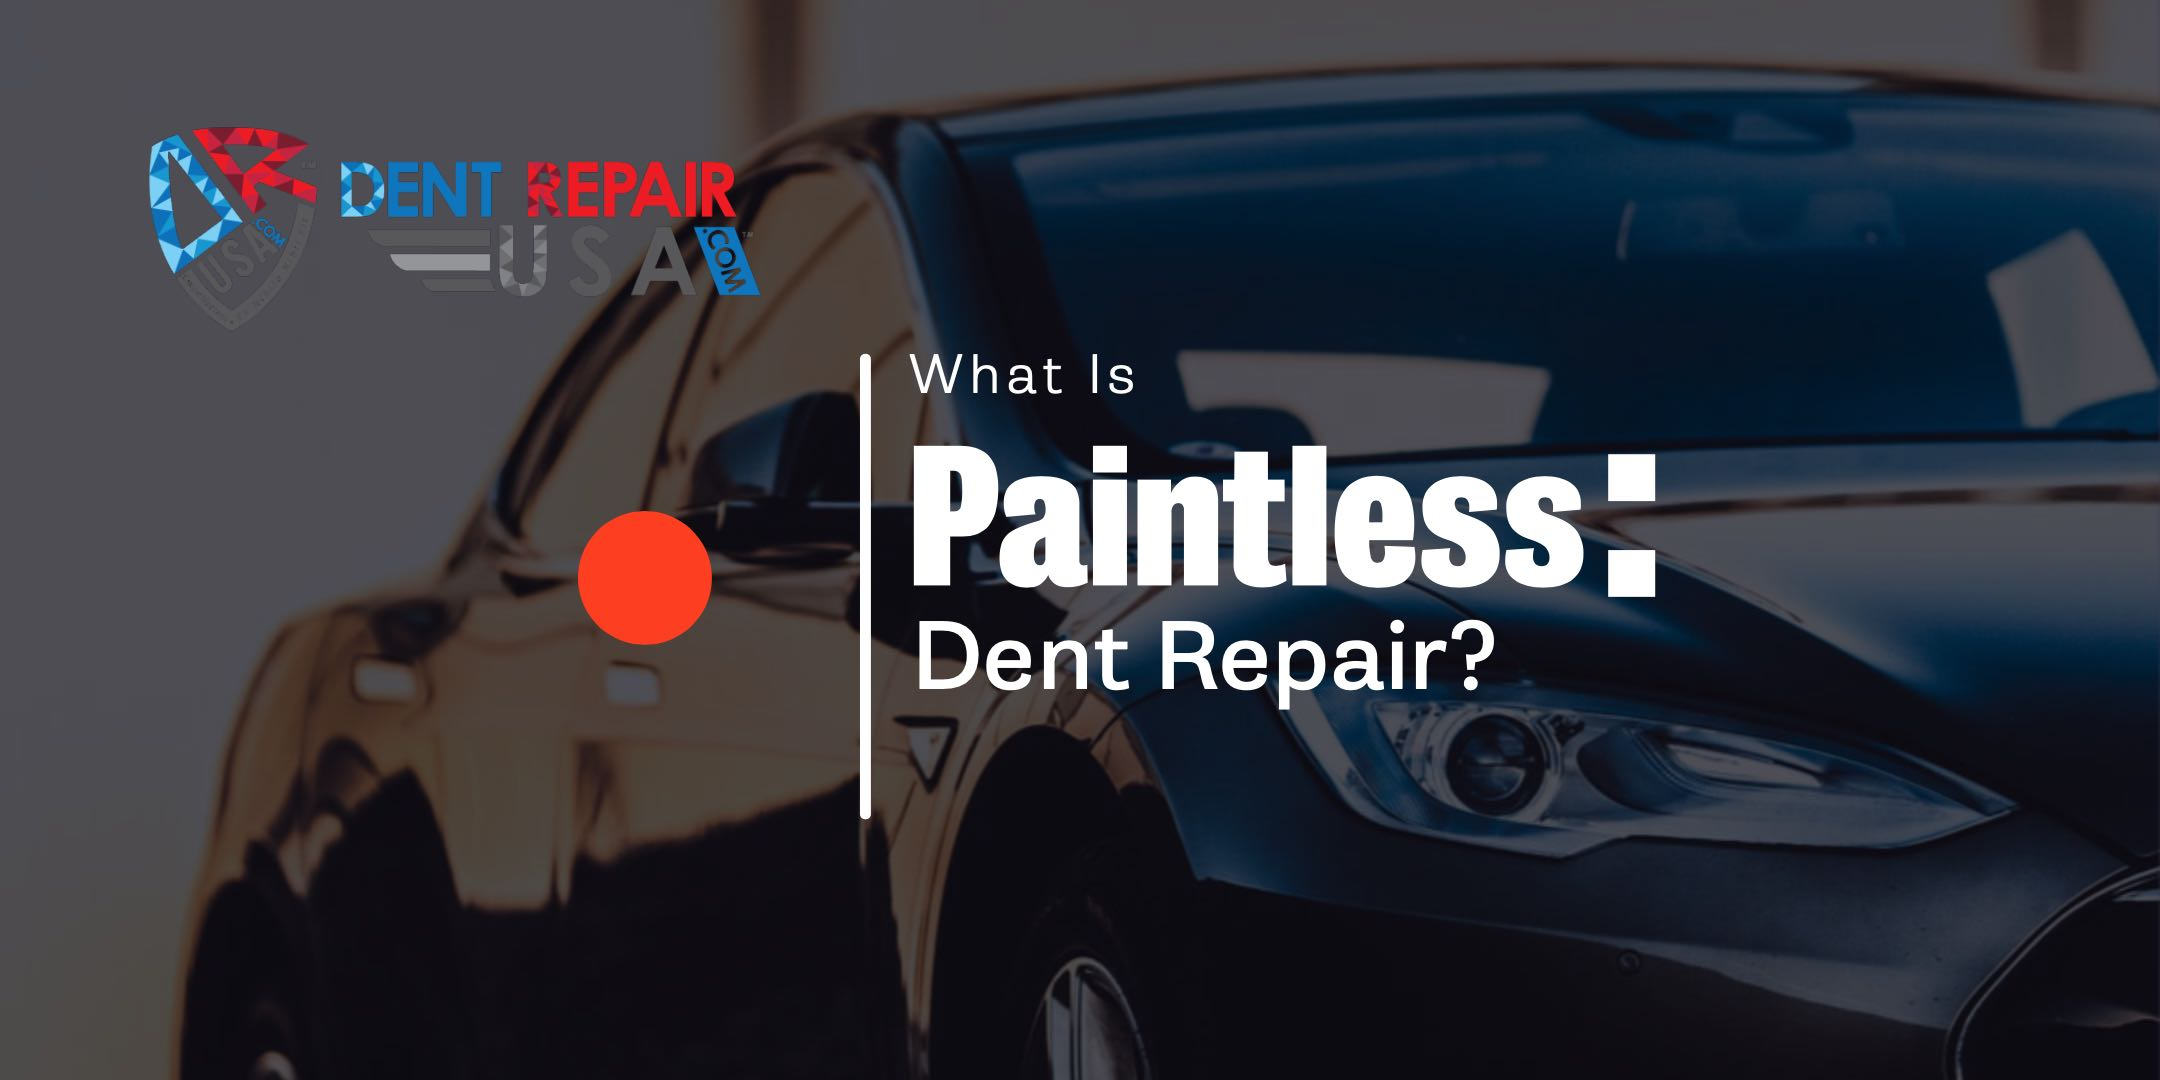 What is Paintless Dent Repair